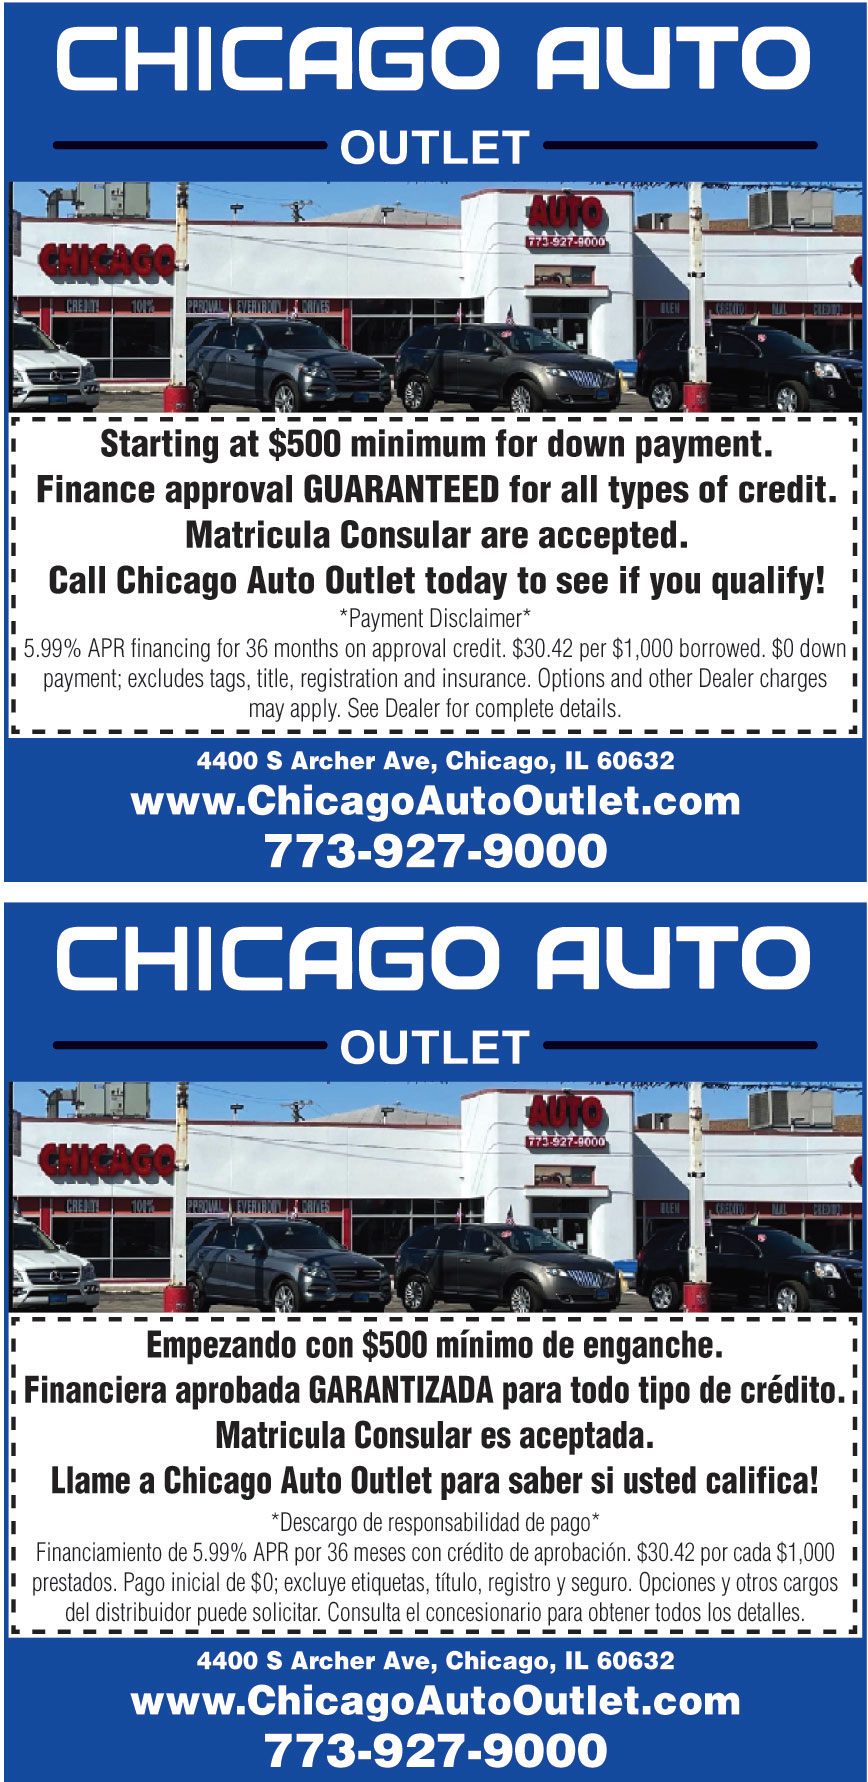 CHICAGO AUTO OUTLET